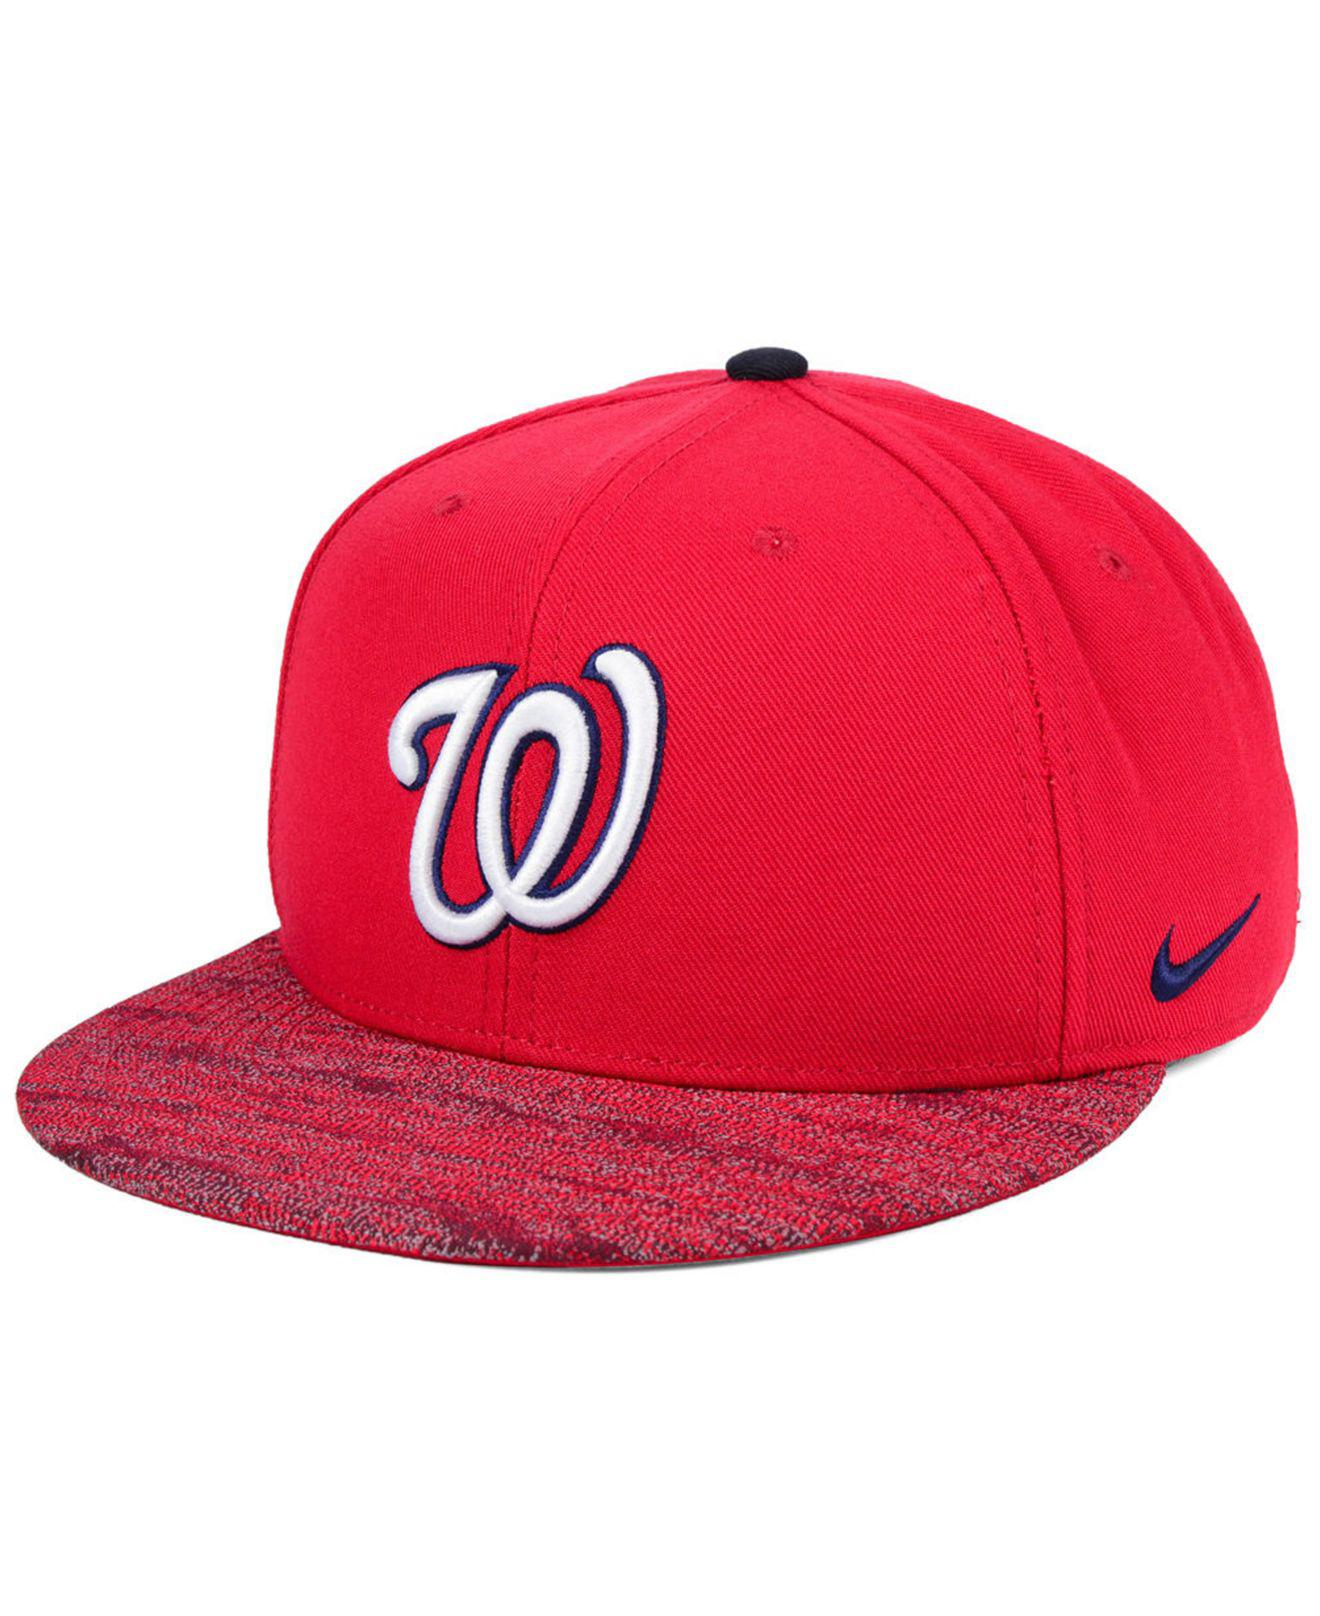 ed0889a0f6187 Lyst - Nike Washington Nationals Reverse New Day Snapback Cap in Red ...